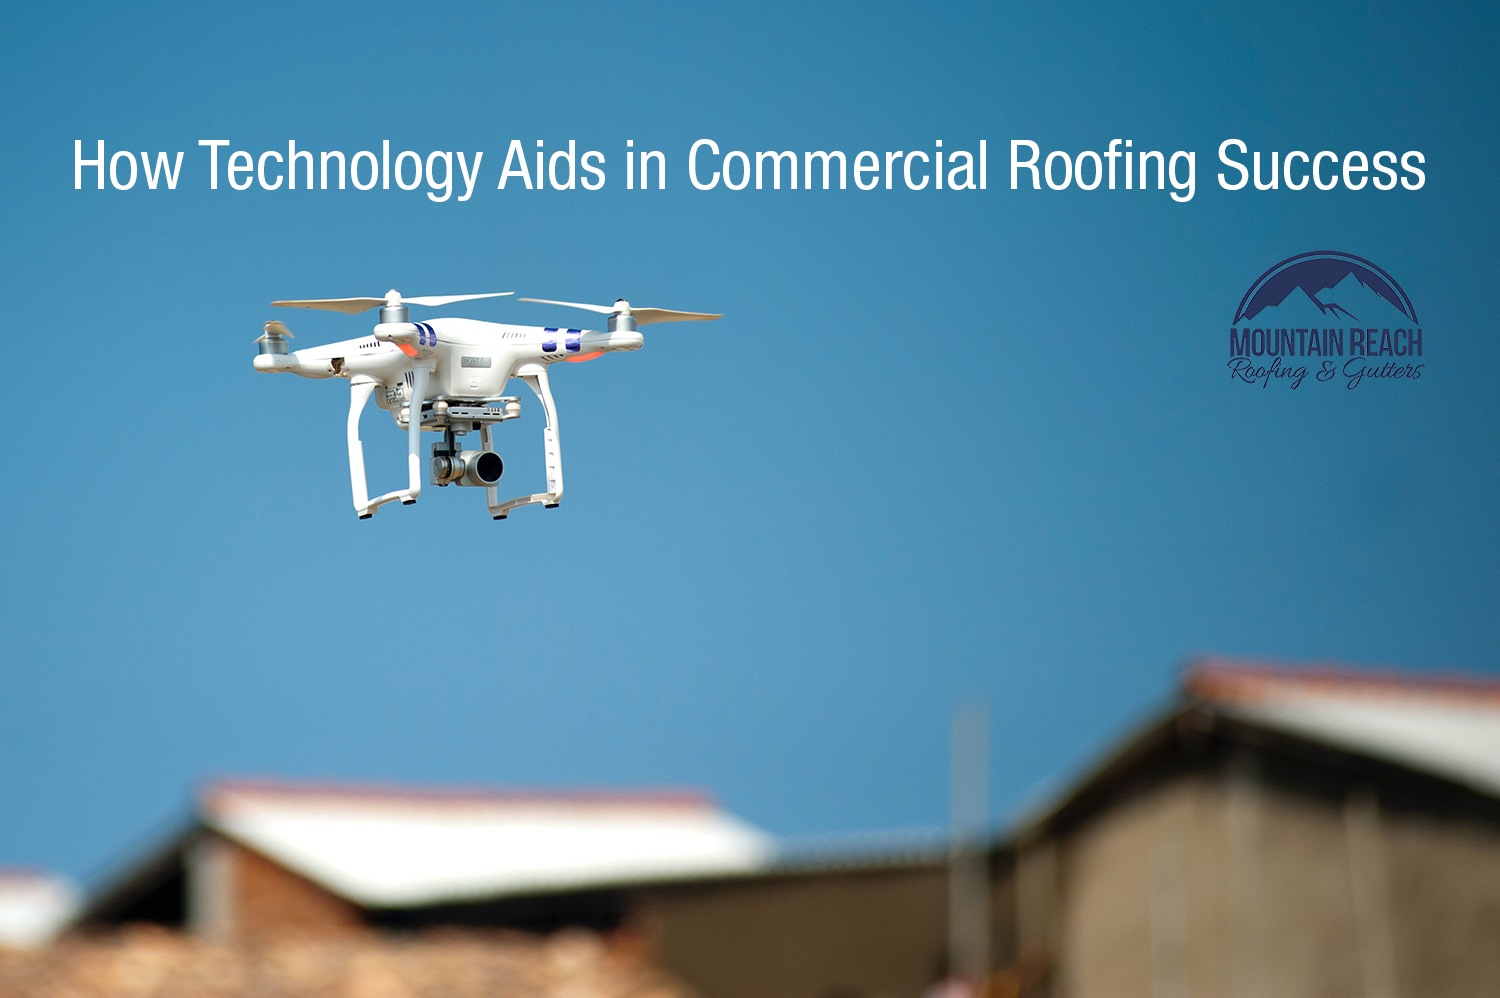 How Technology Aids in Commercial Roofing Success